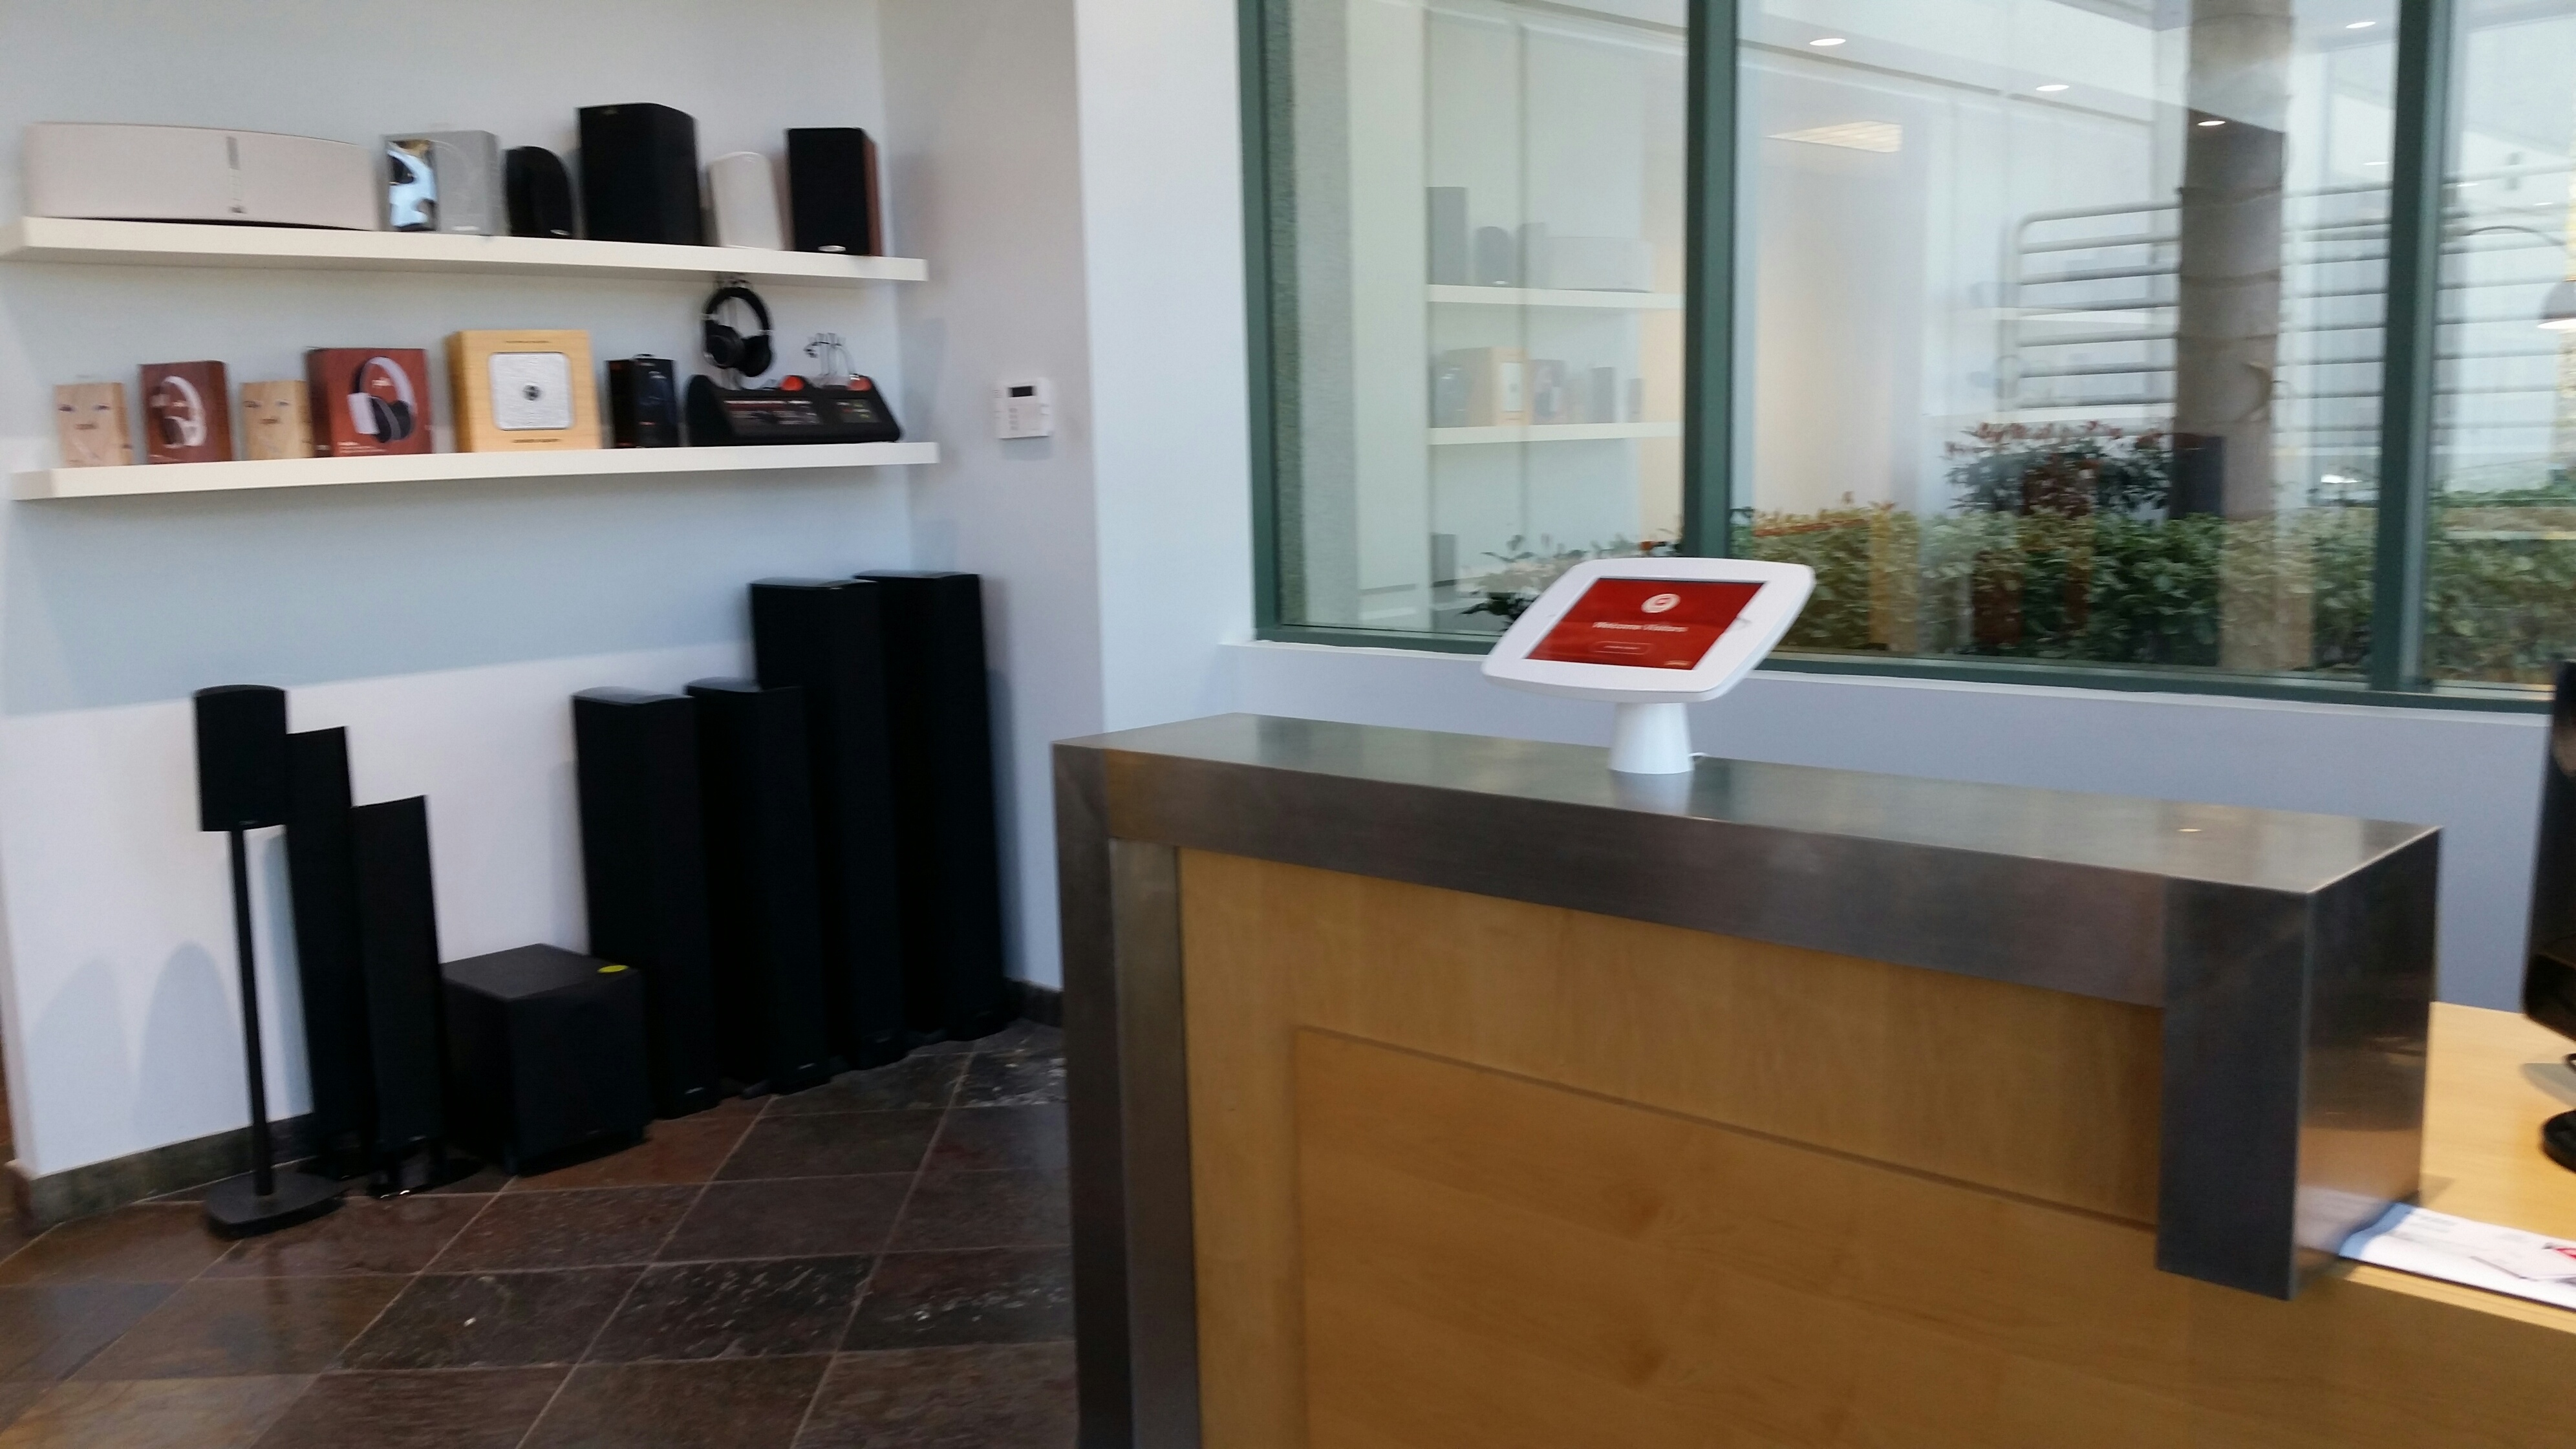 Greetly iPad receptionist being used in a modern office